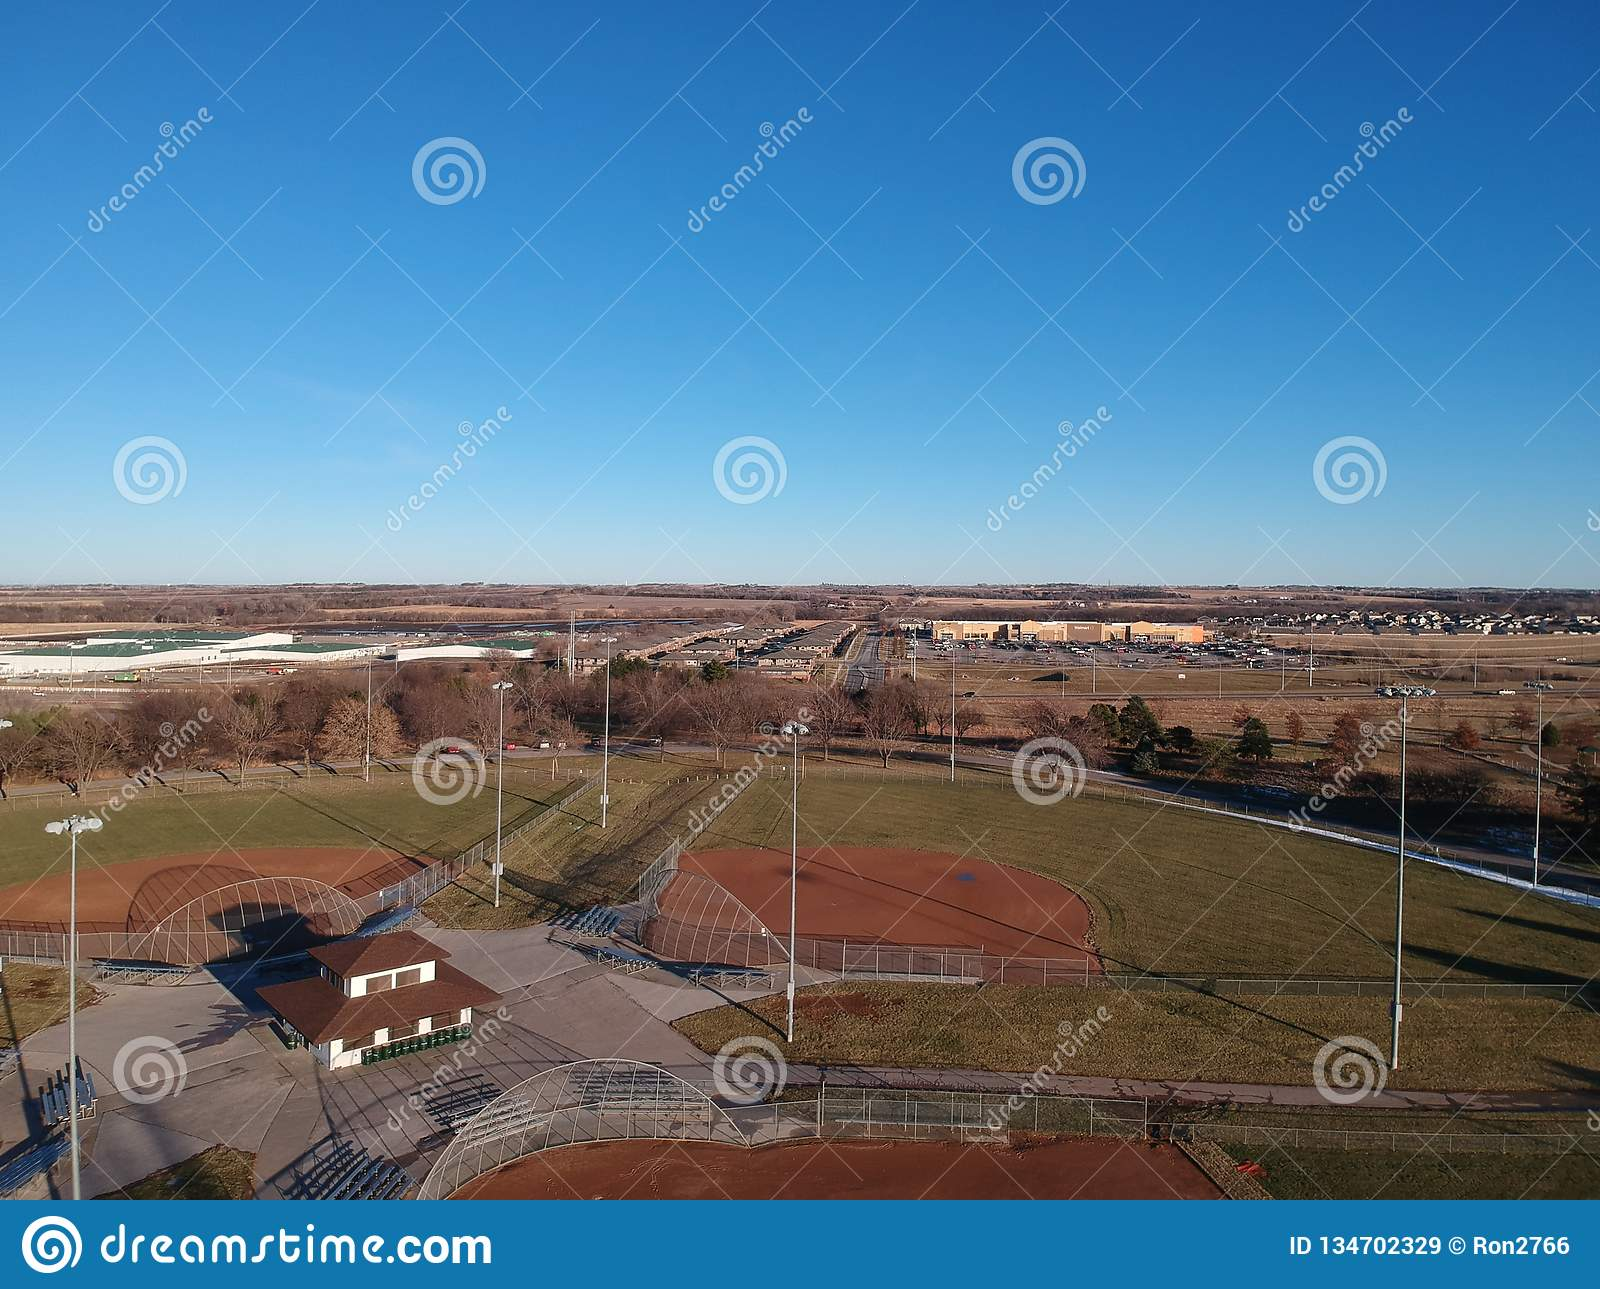 View Of Softball From Above Stock Image - Image of season, highview